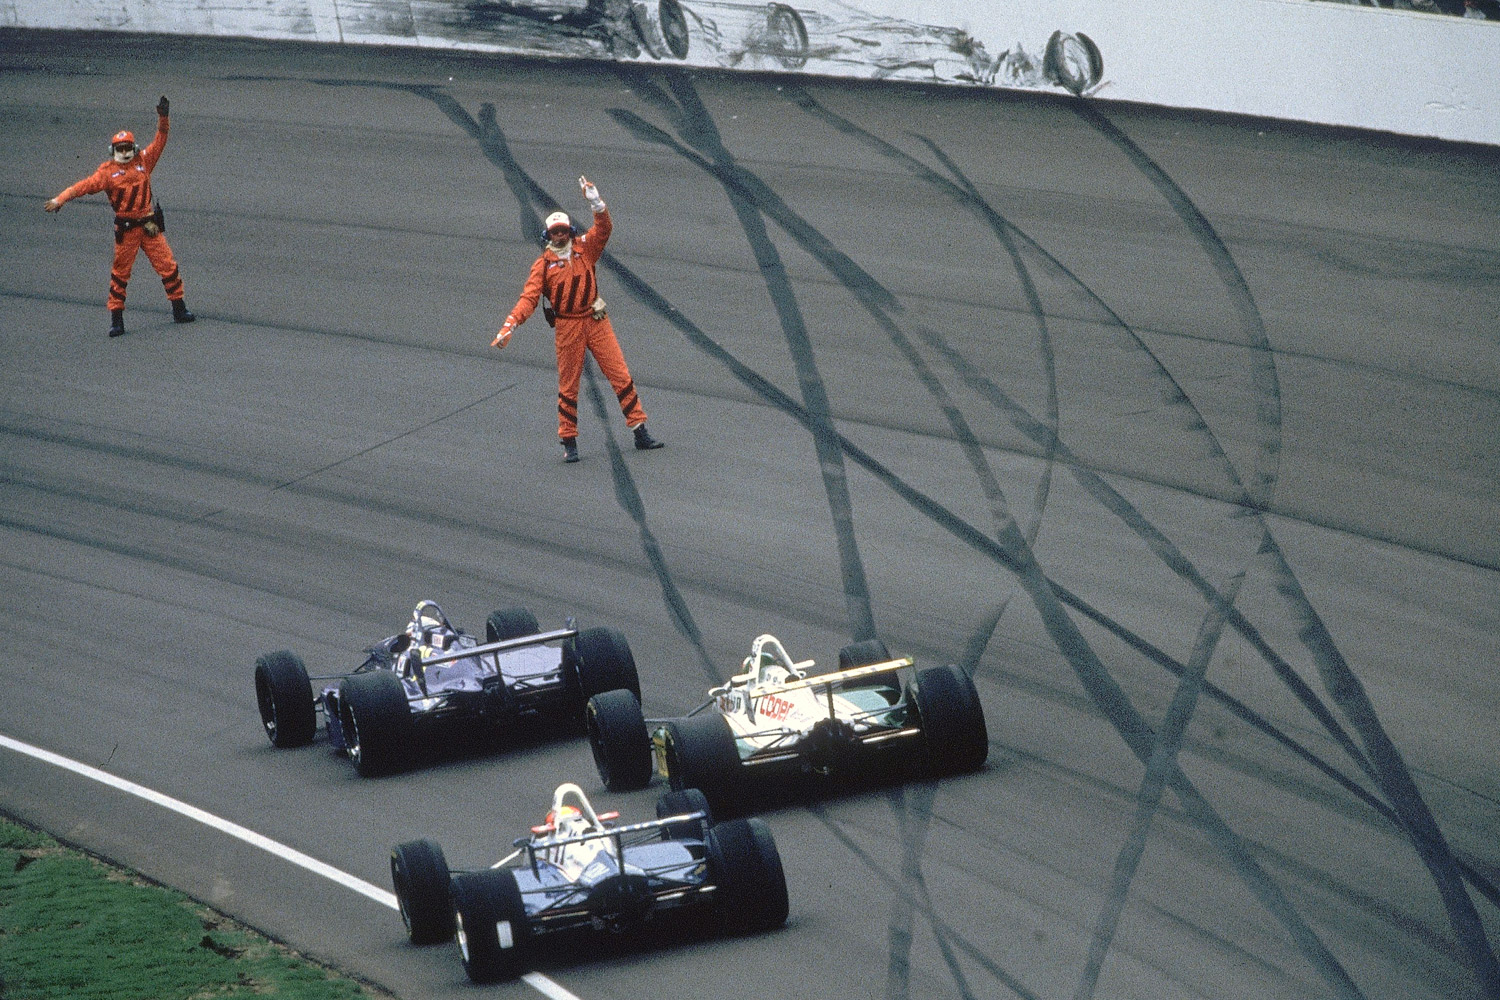 Boycotted by many drivers, the first postsplit 500 retained some golden rules-slow down to avoid debris and don't follow the rubber to the wall.